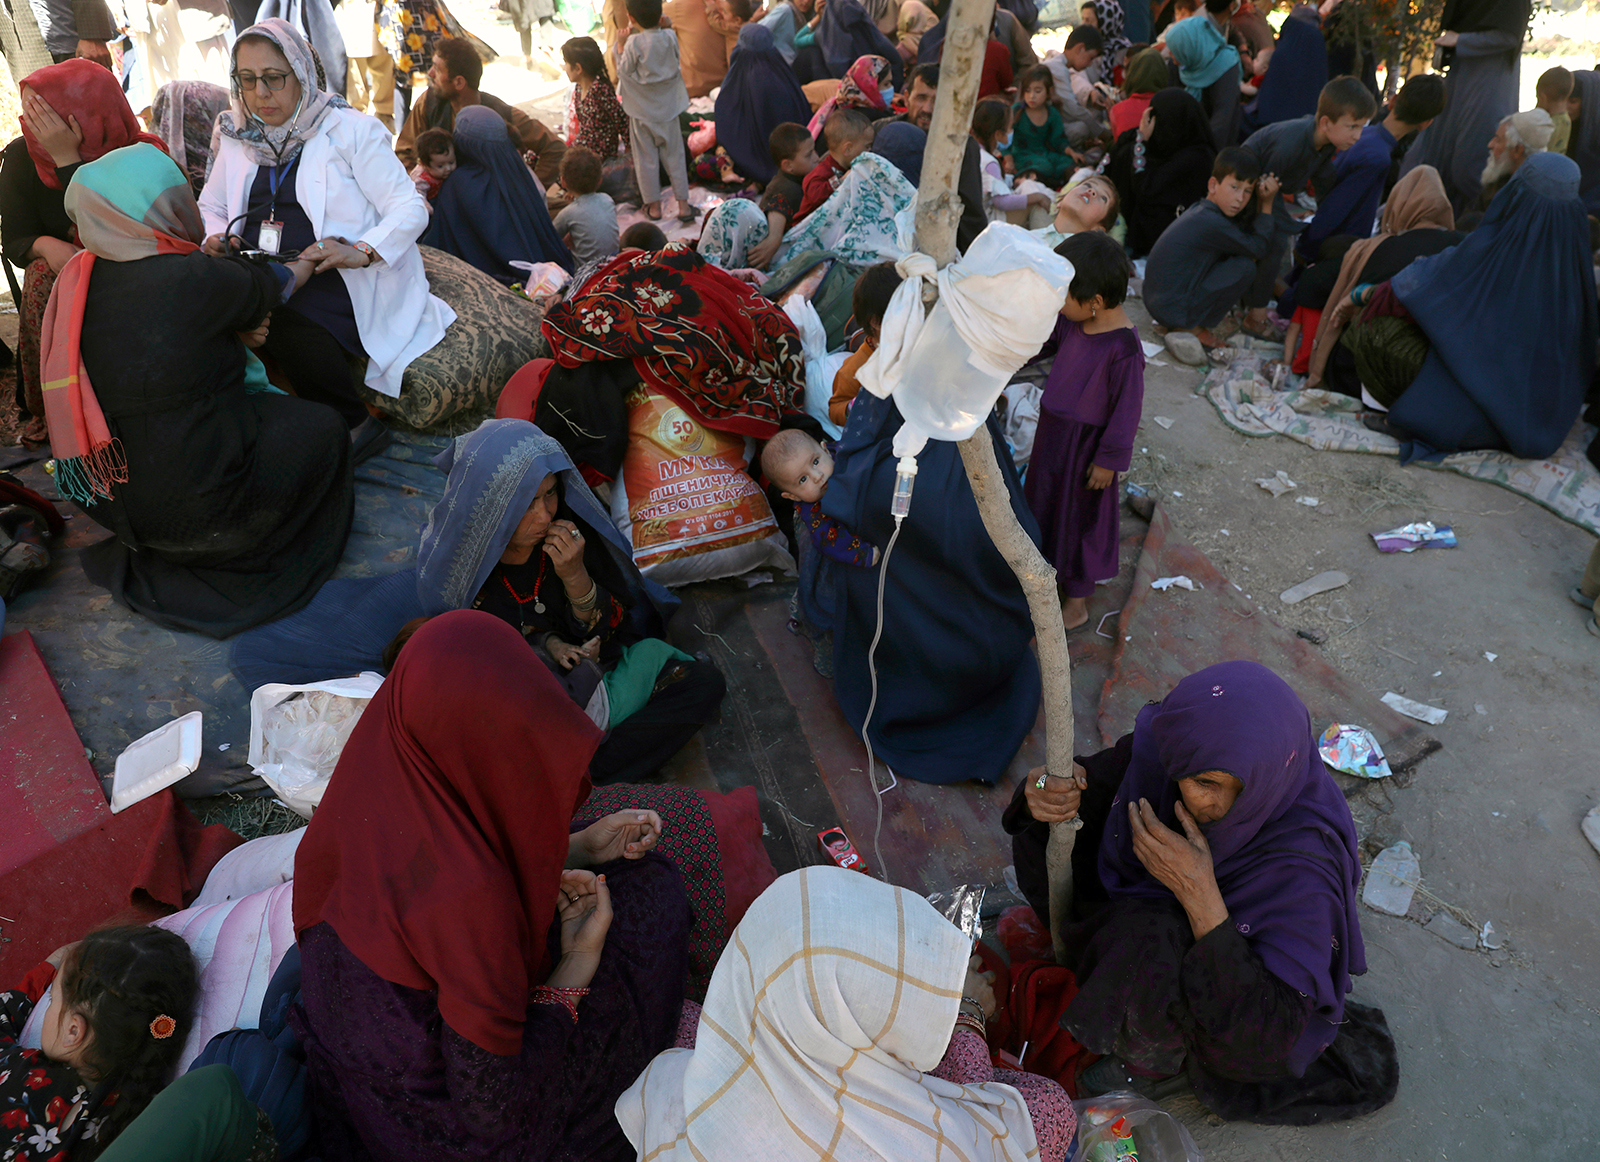 Internally displaced Afghan women from northern provinces, who fled their home due to fighting between the Taliban and Afghan security personnel, receive medical care in a public park in Kabul on August 10.